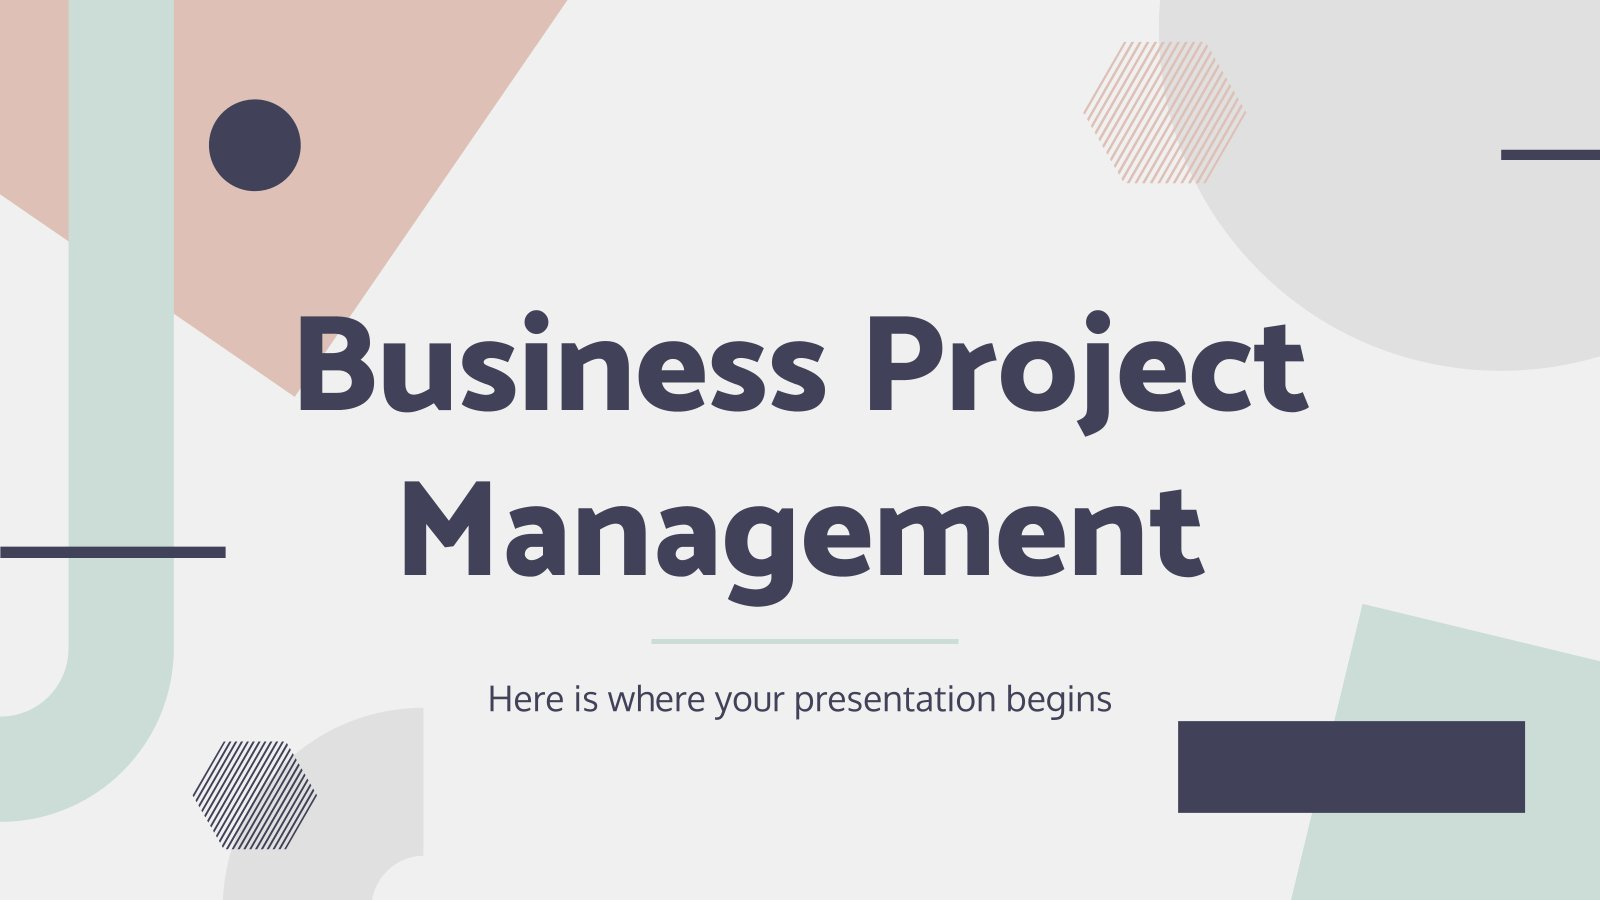 Business Project Management presentation template